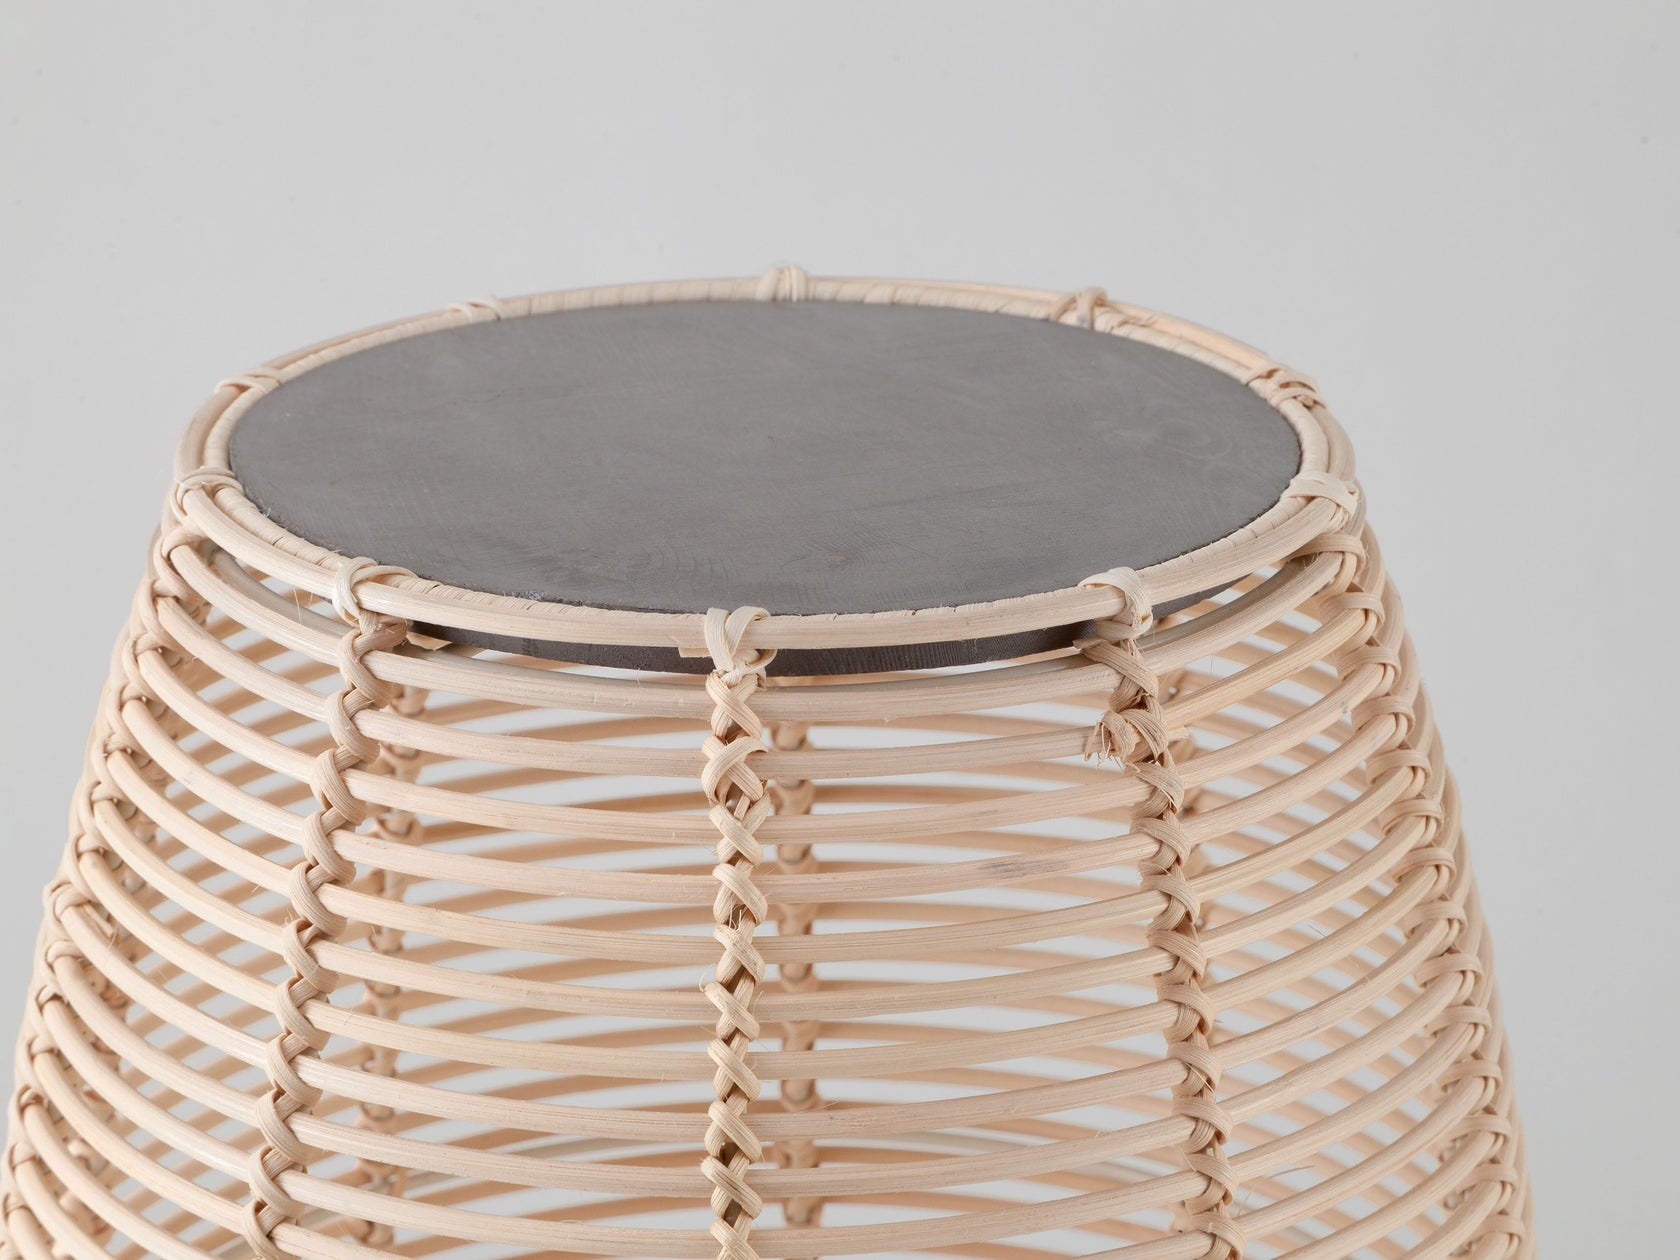 Rattan and concrete side table natural | zoom | houseof.com